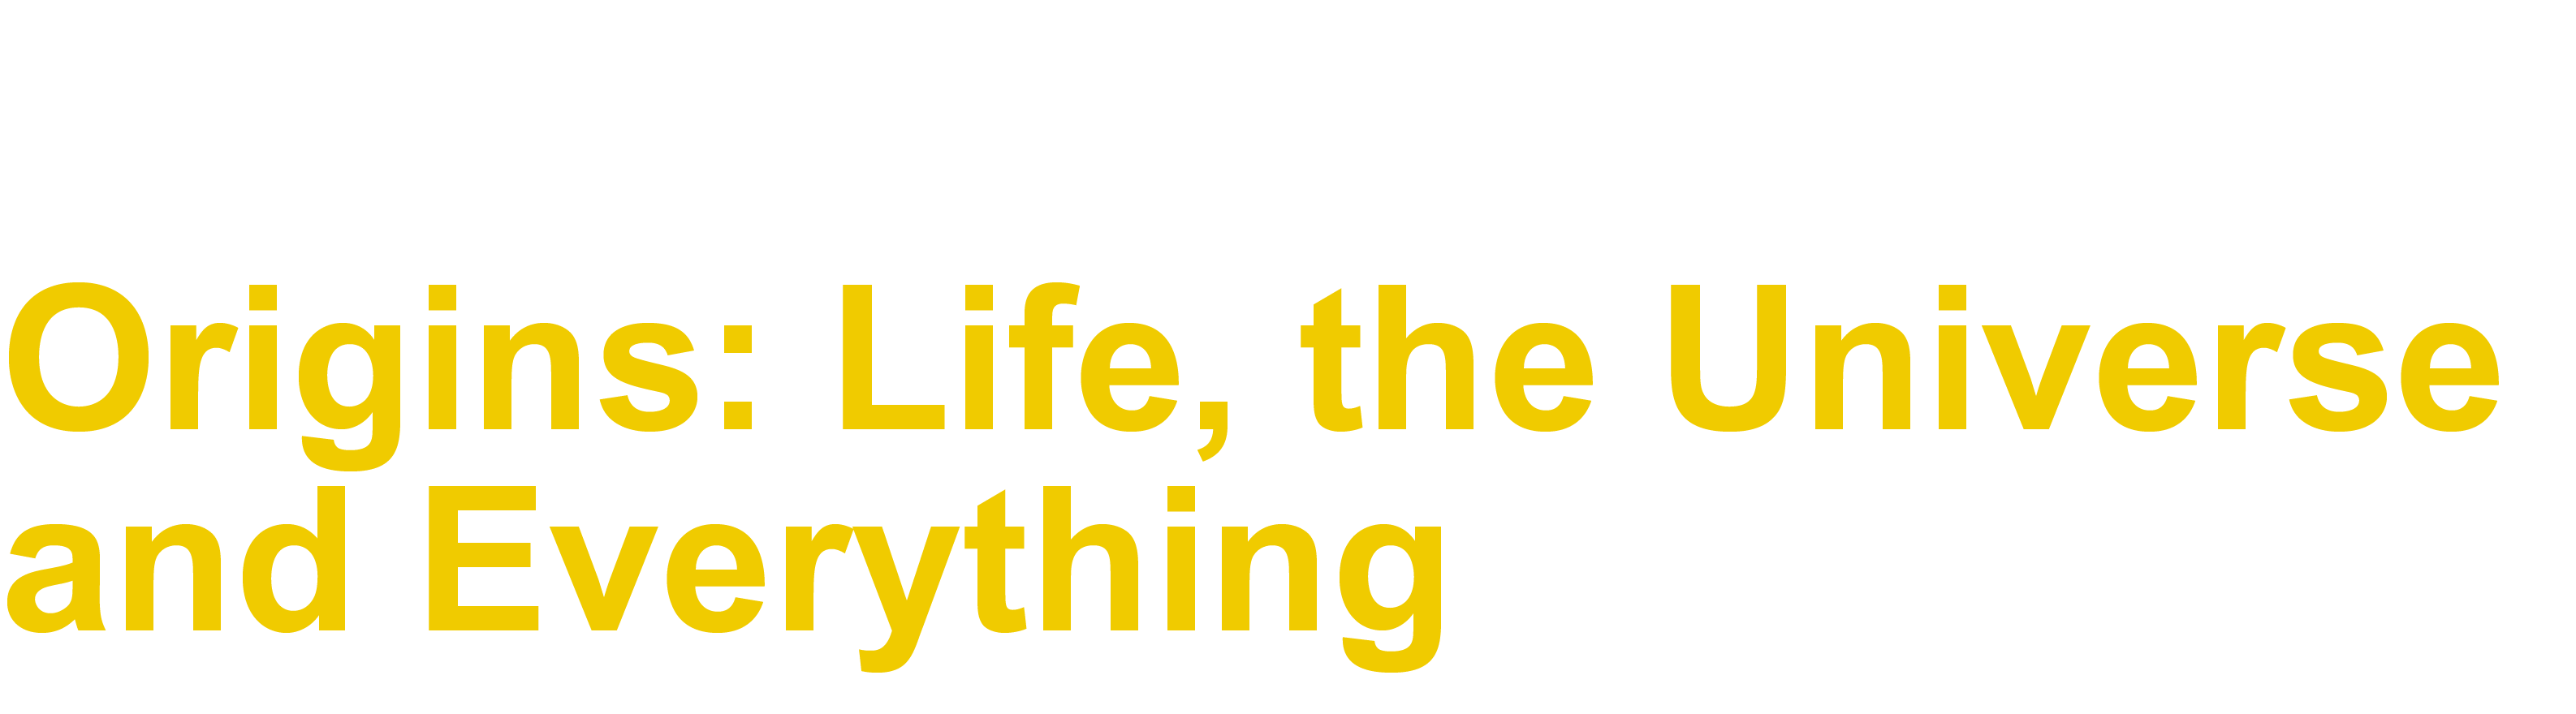 Fall 2017 Honors Colloquium - Origins: Life, the Universe and Everything